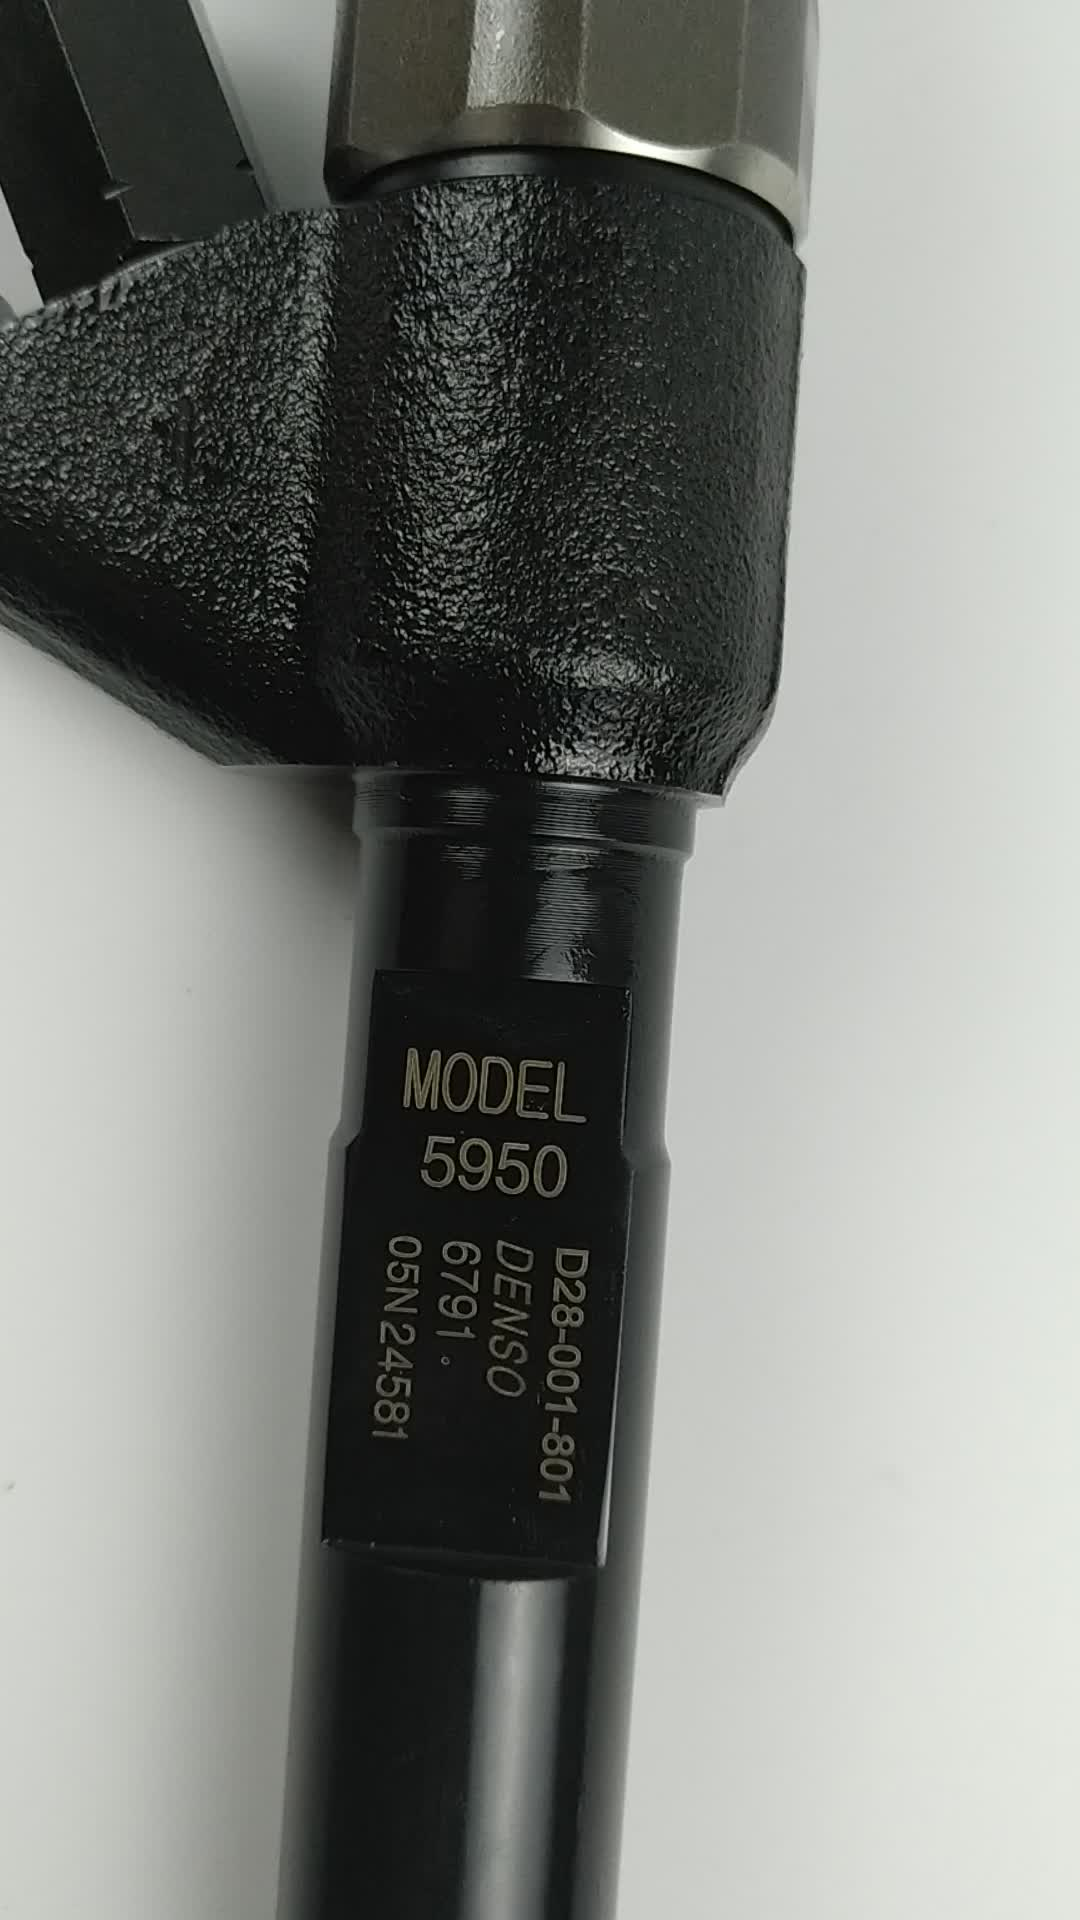 diesel Denso common rail fuel injector 095000-6791